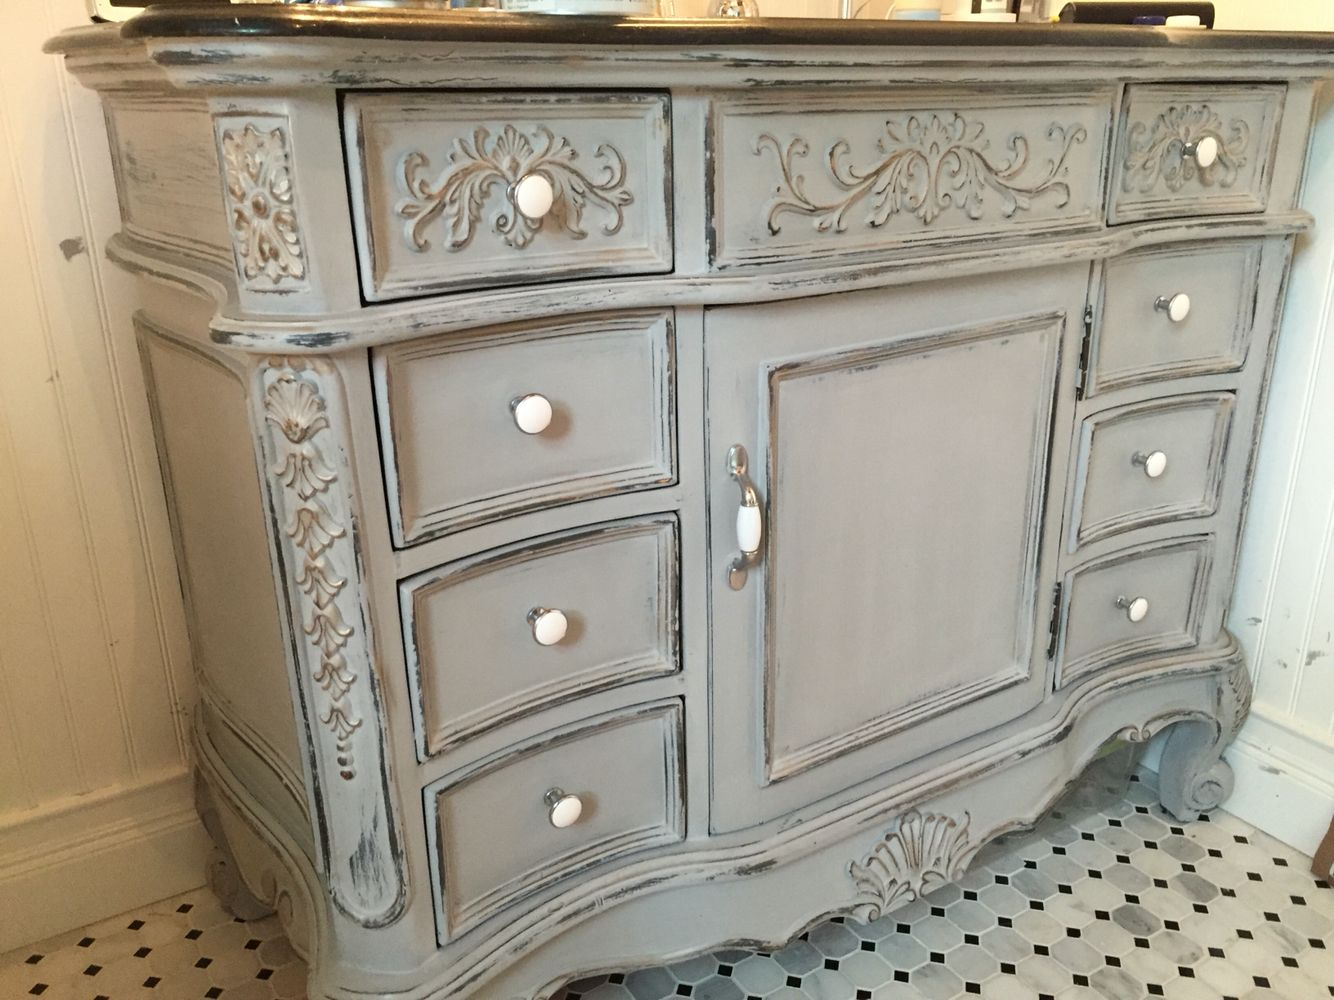 Annie Sloan Paris Grey And German Silver Gilding Wax Over Black Vanity Painted Furniture Designs Annie Sloan Furniture Silver Painted Furniture